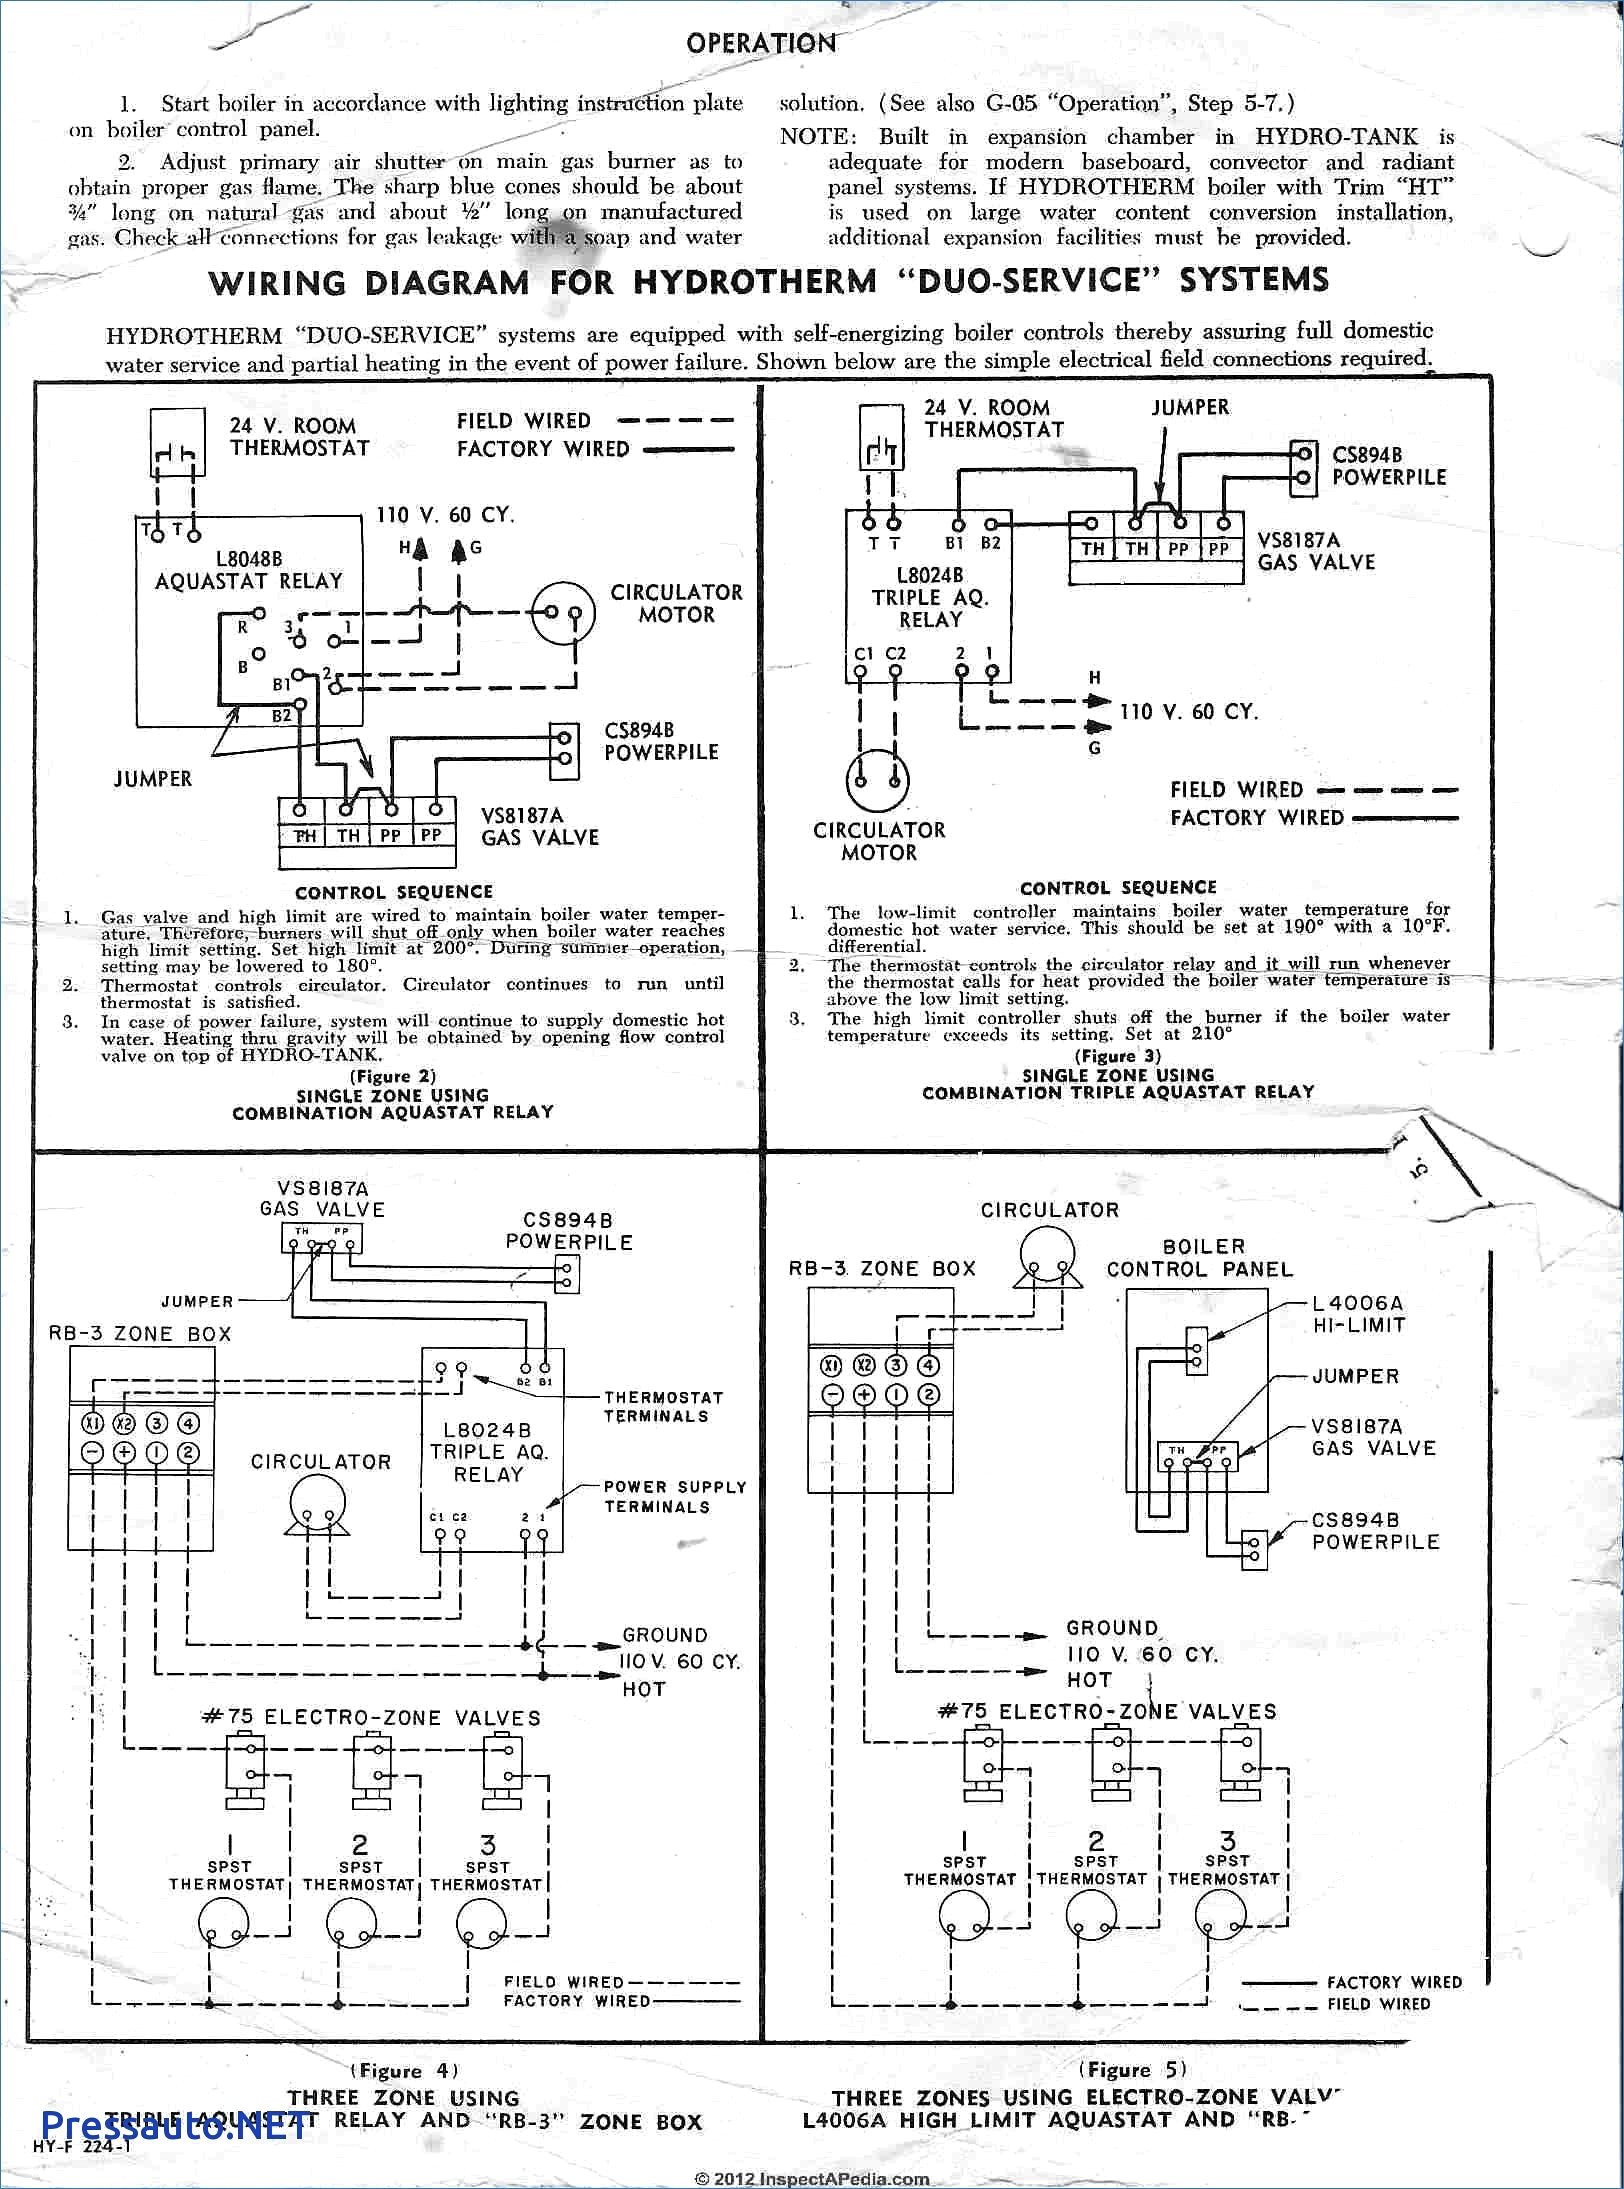 Motor Control Center Bucket Wiring Diagram